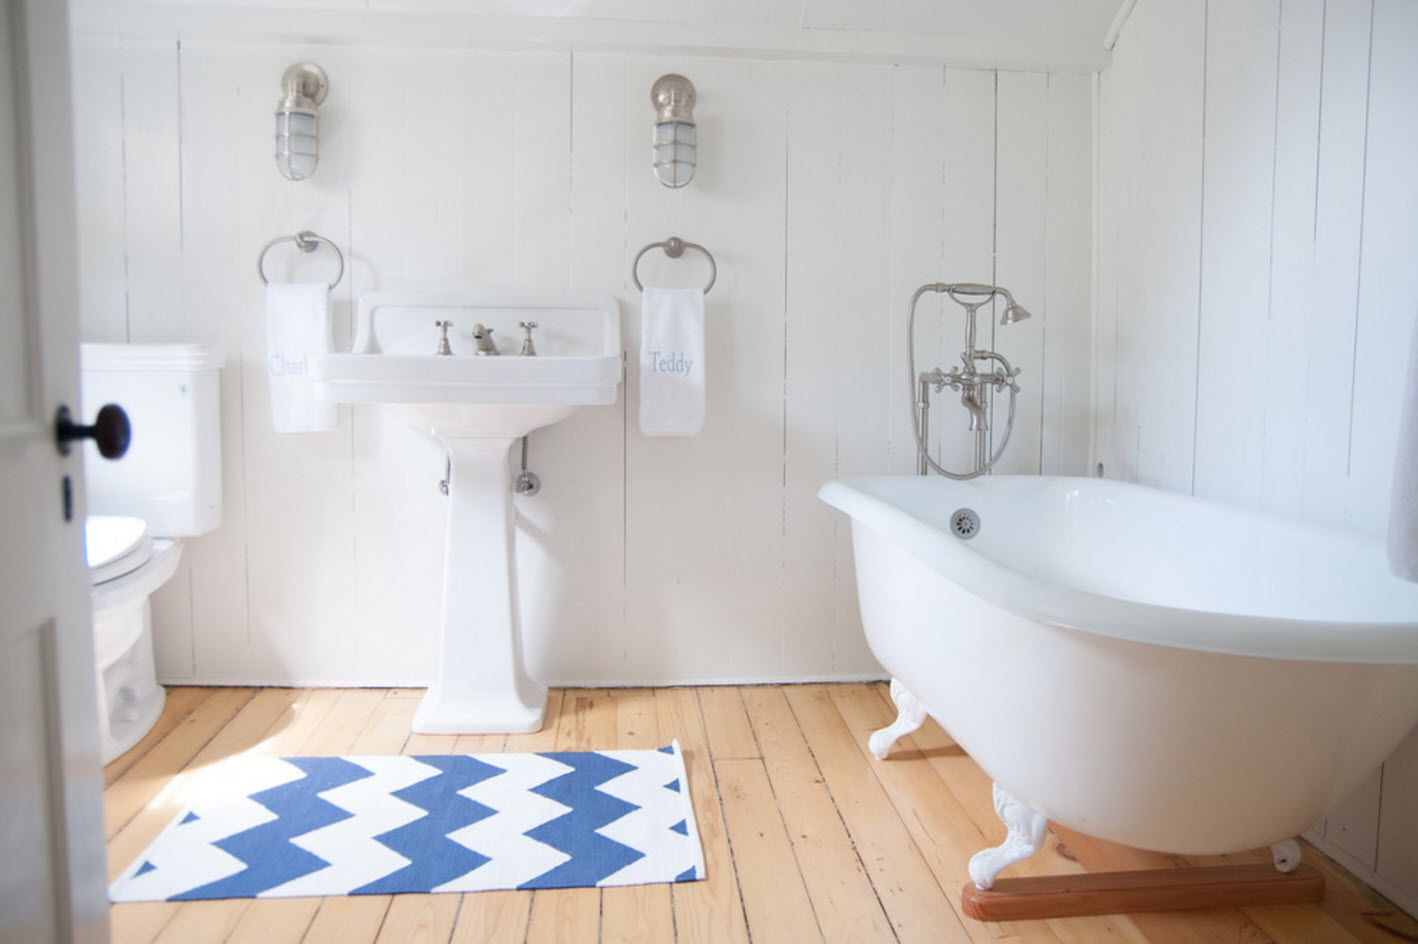 Wavy blue and white rug in the bathroom